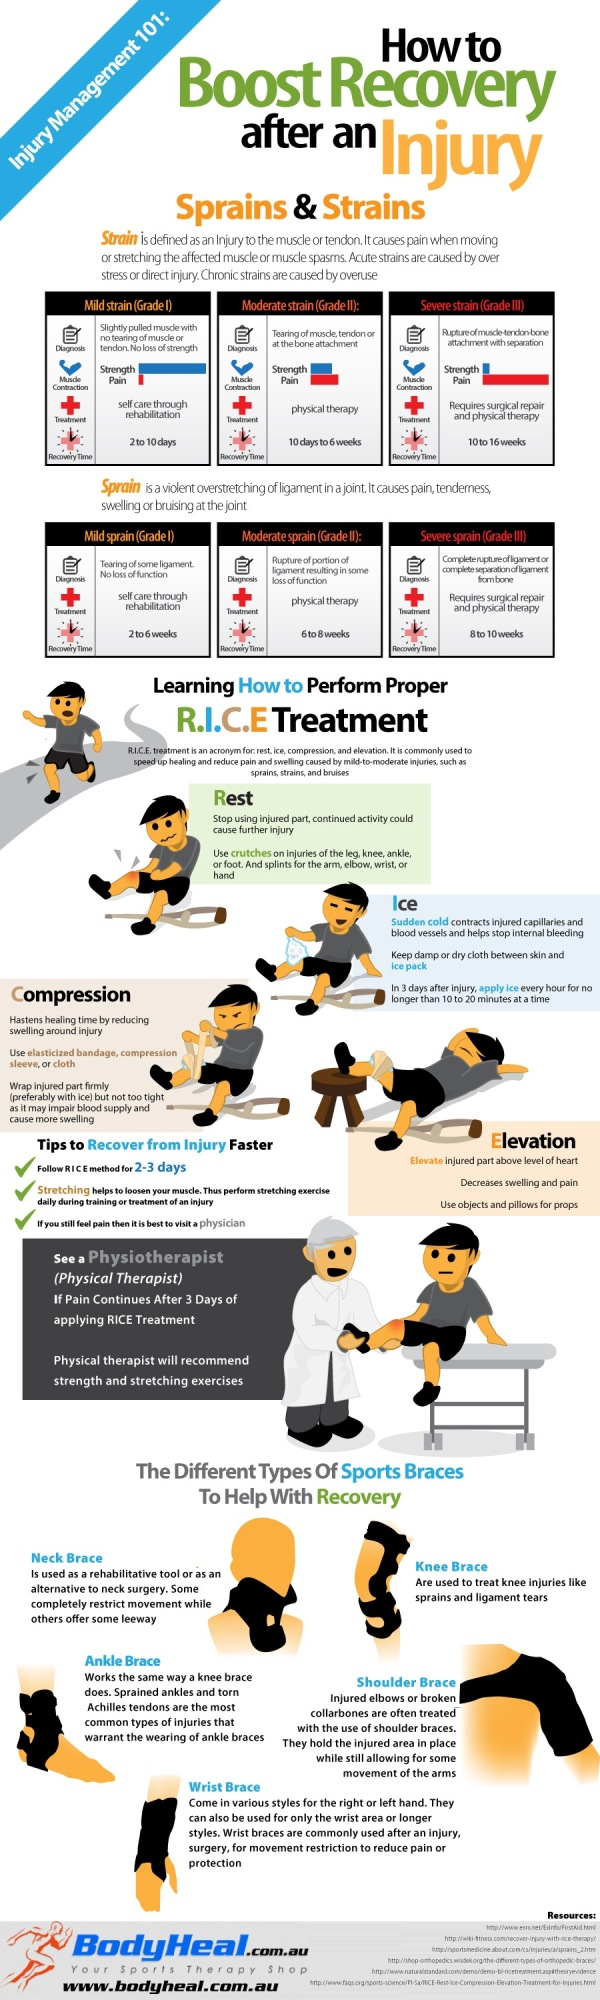 How To Boost Recovery After An Injury infographic